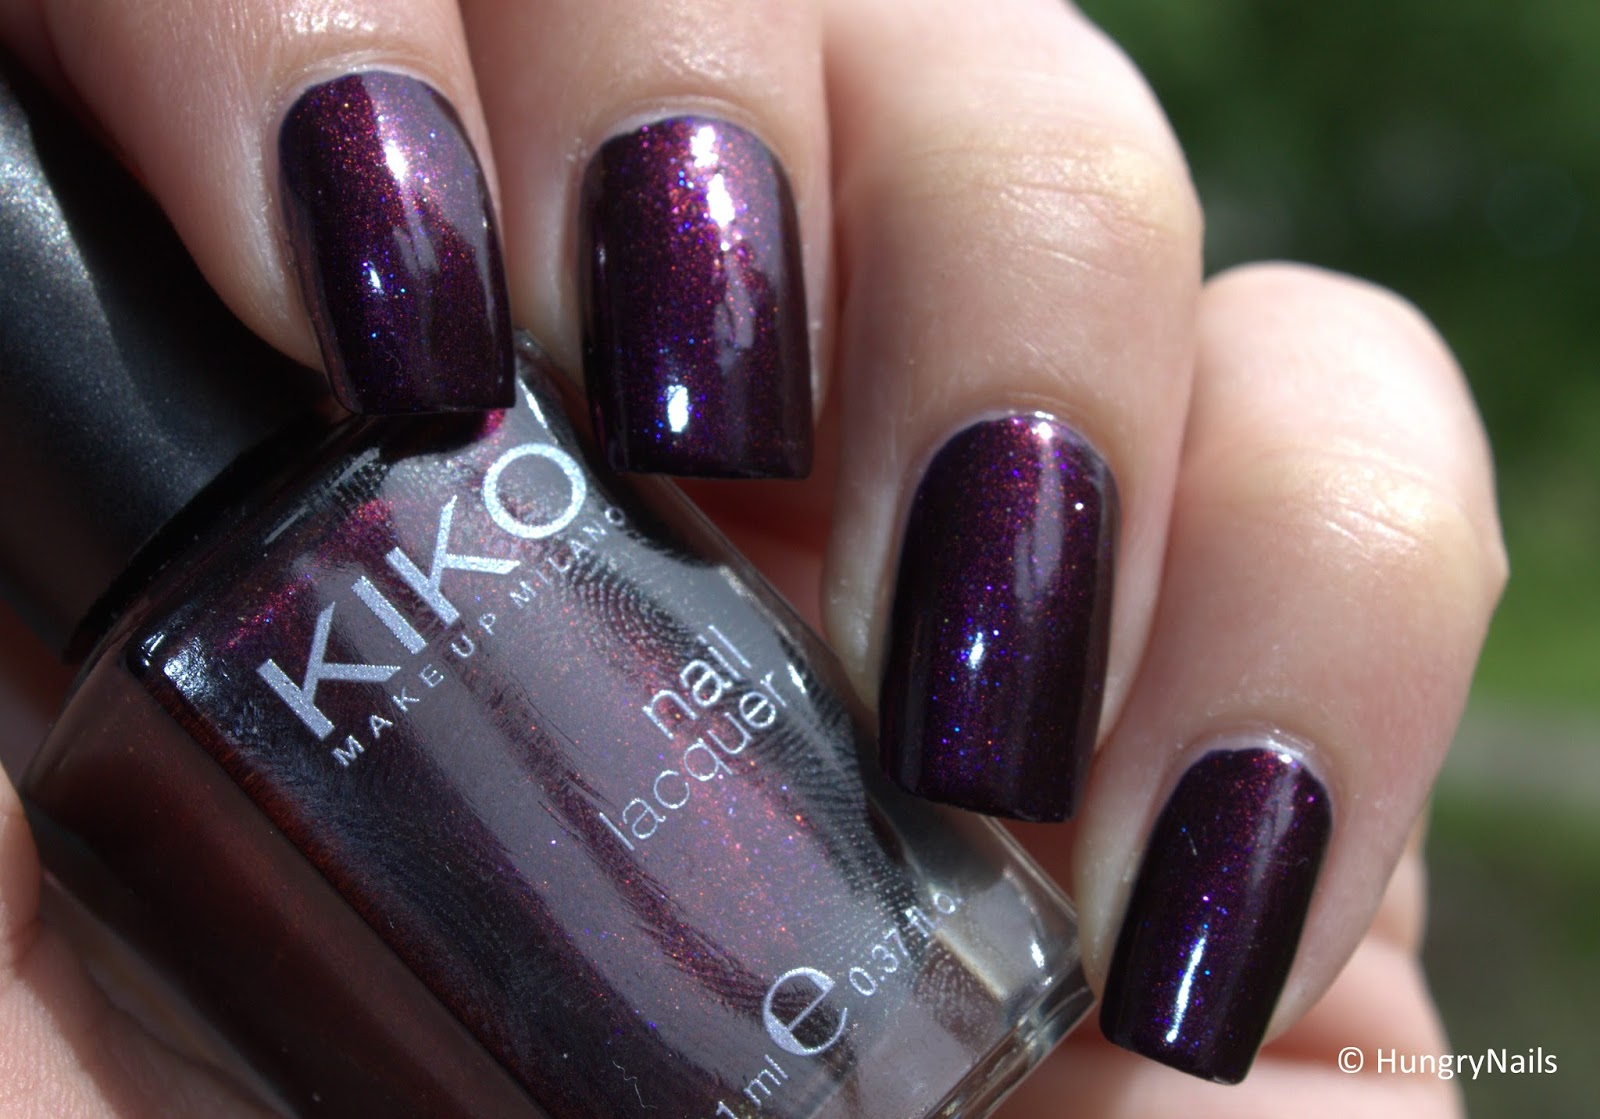 Kiko 497 Pearly Indian Violet - HungryNails Blog | Die bunte Welt ...